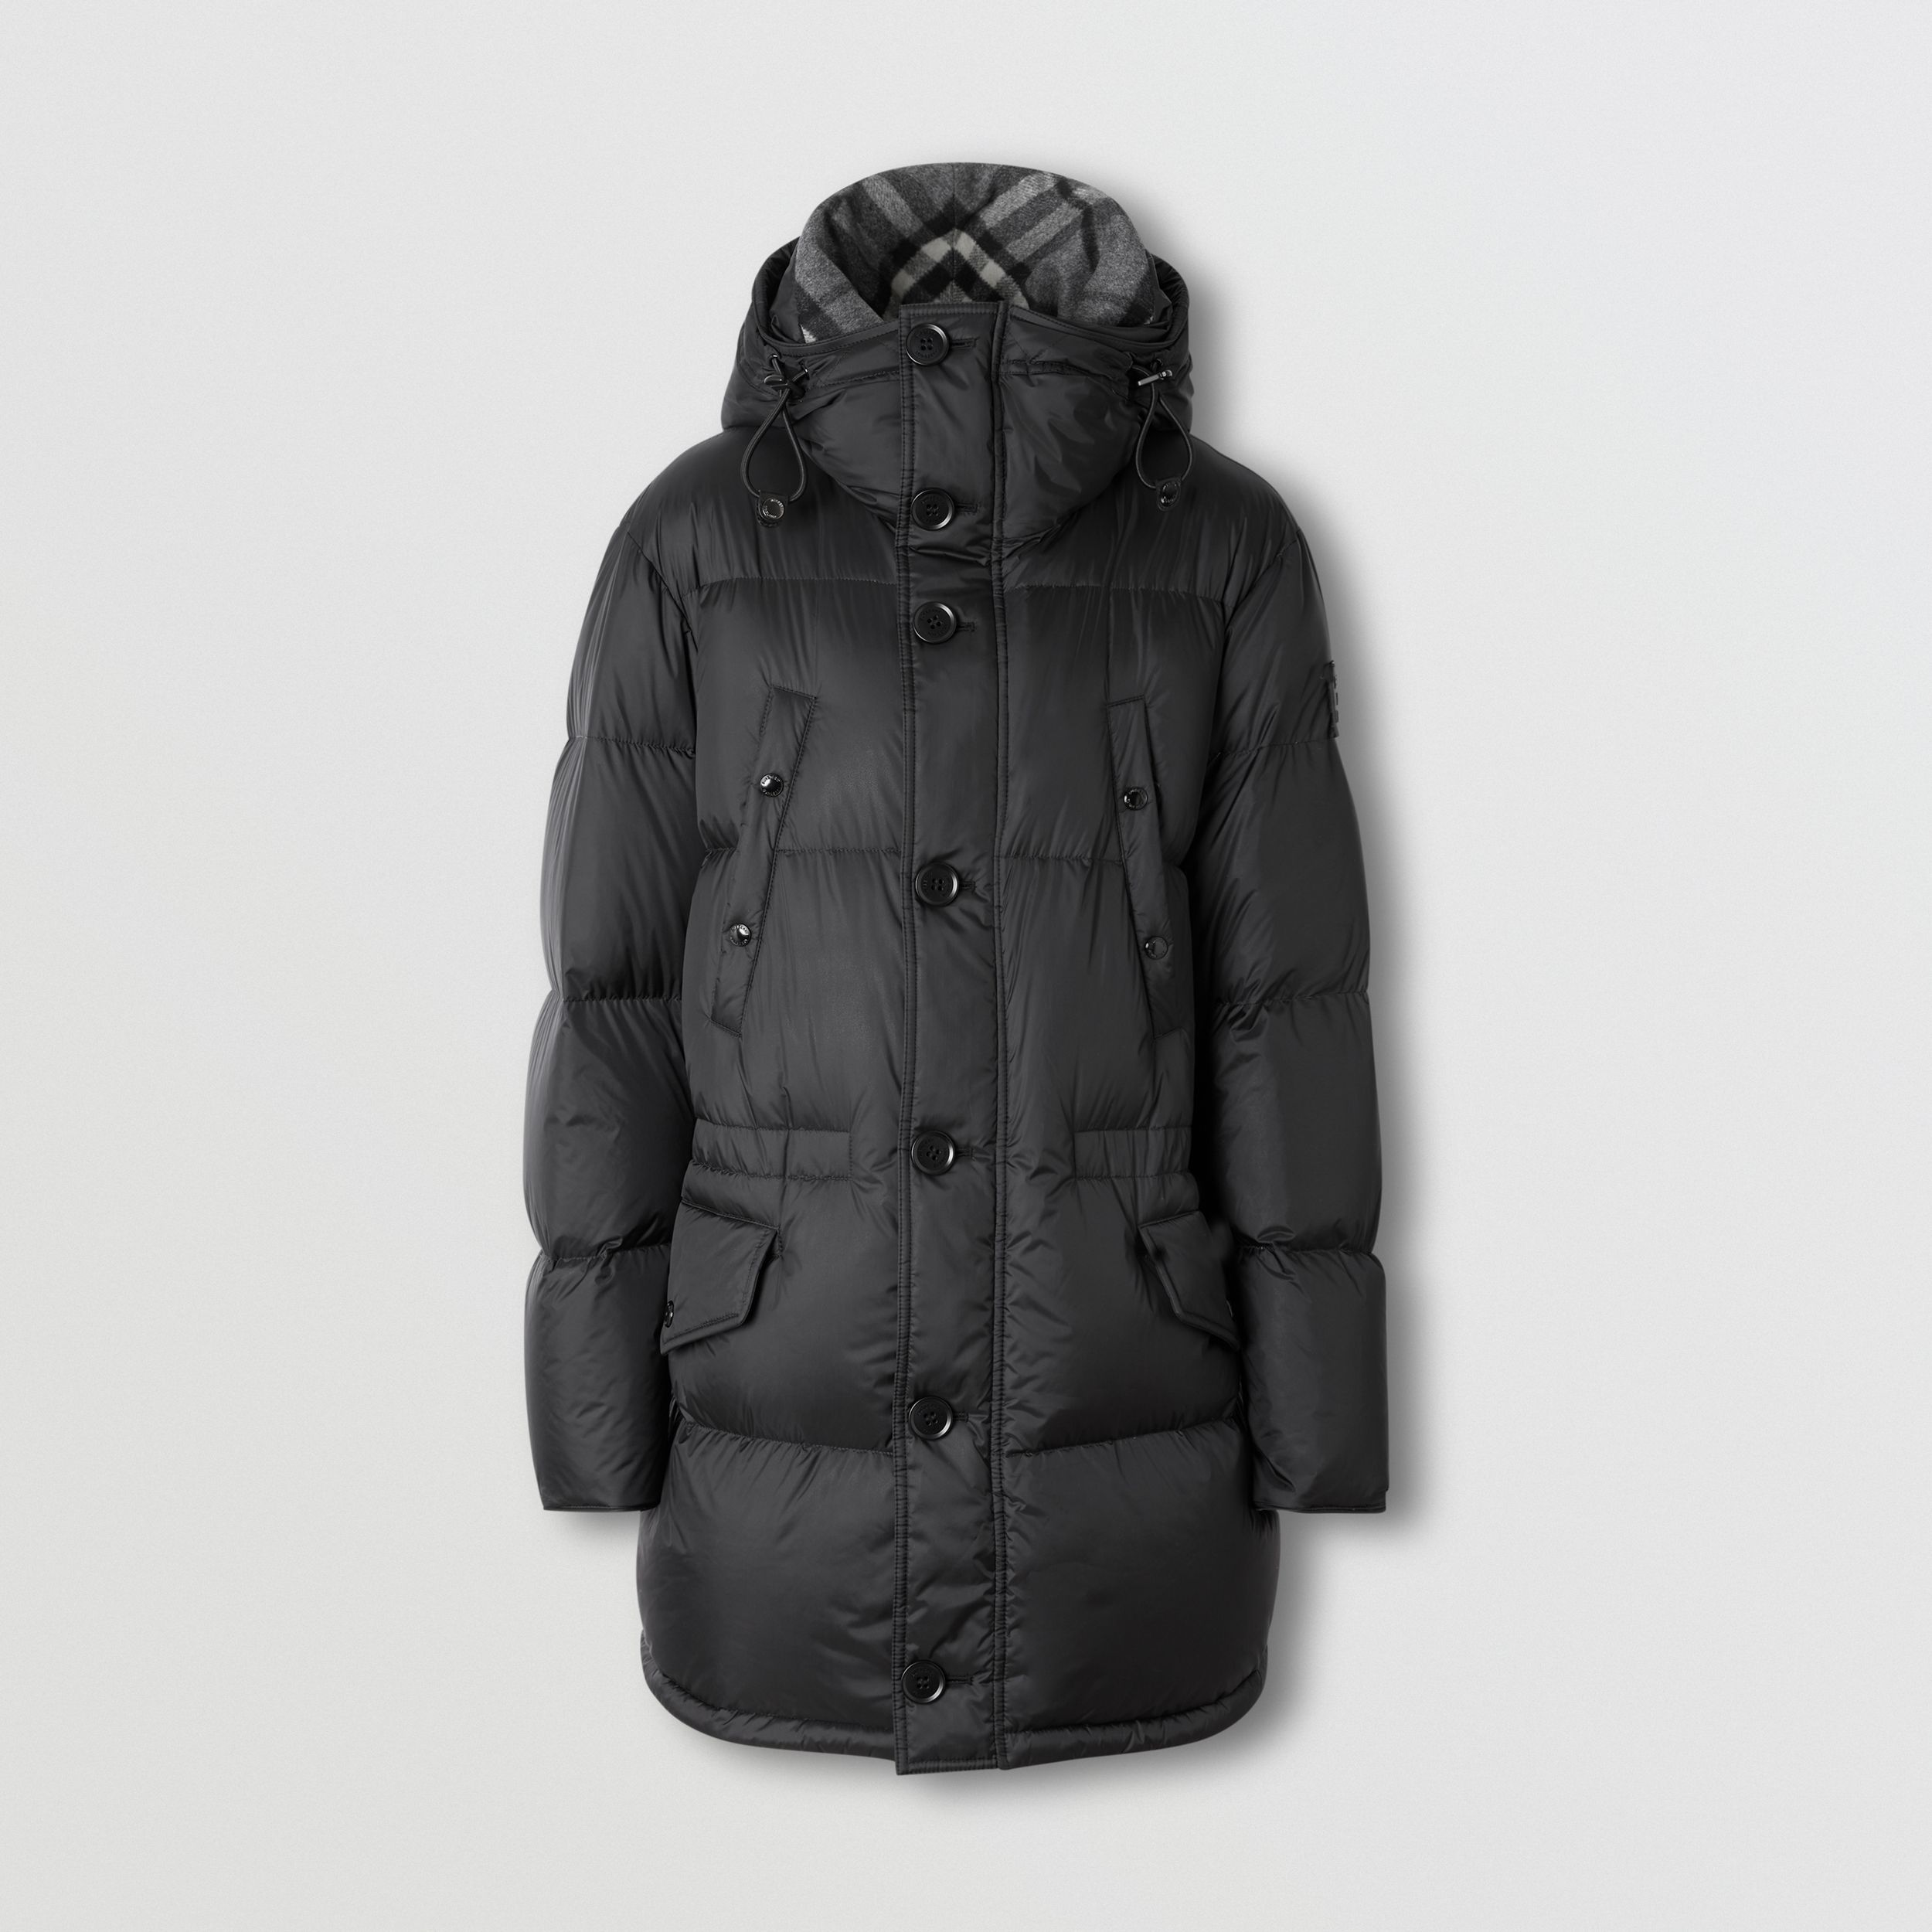 Logo Detail Hooded Puffer Coat in Black - Men | Burberry Australia - 4